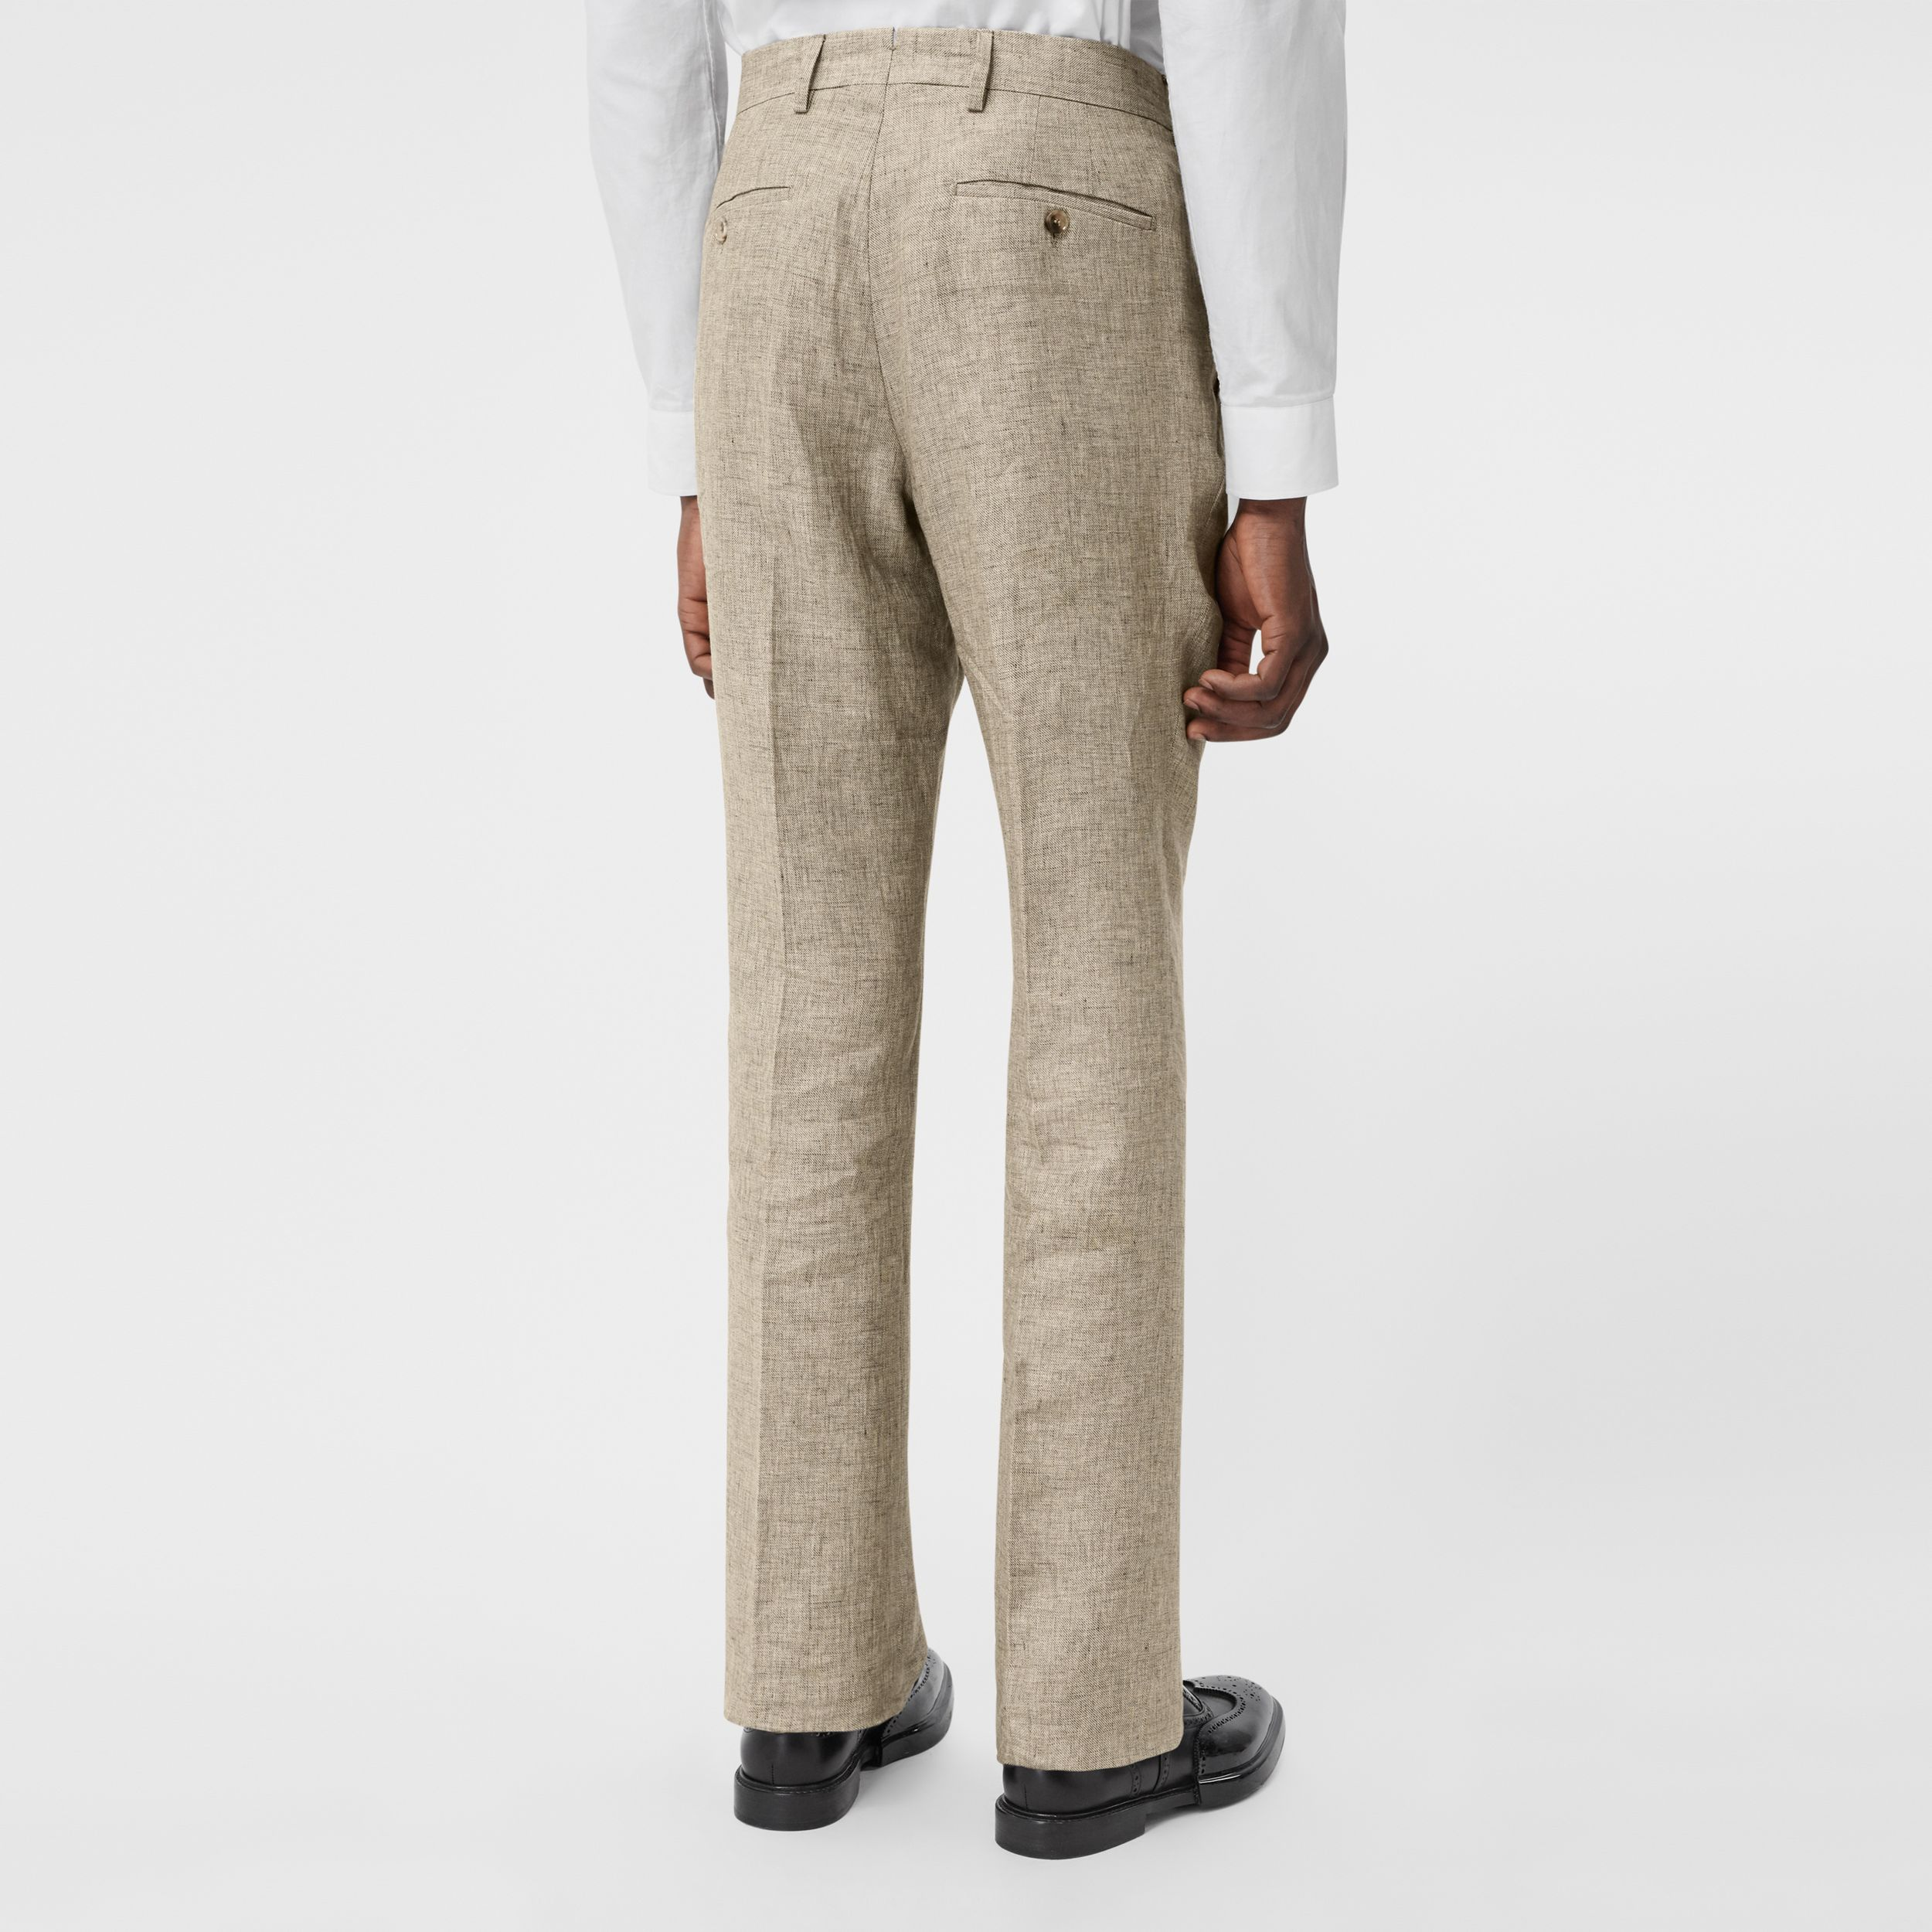 Classic Fit Linen Tailored Trousers in Cedar Brown Melange - Men | Burberry - 3